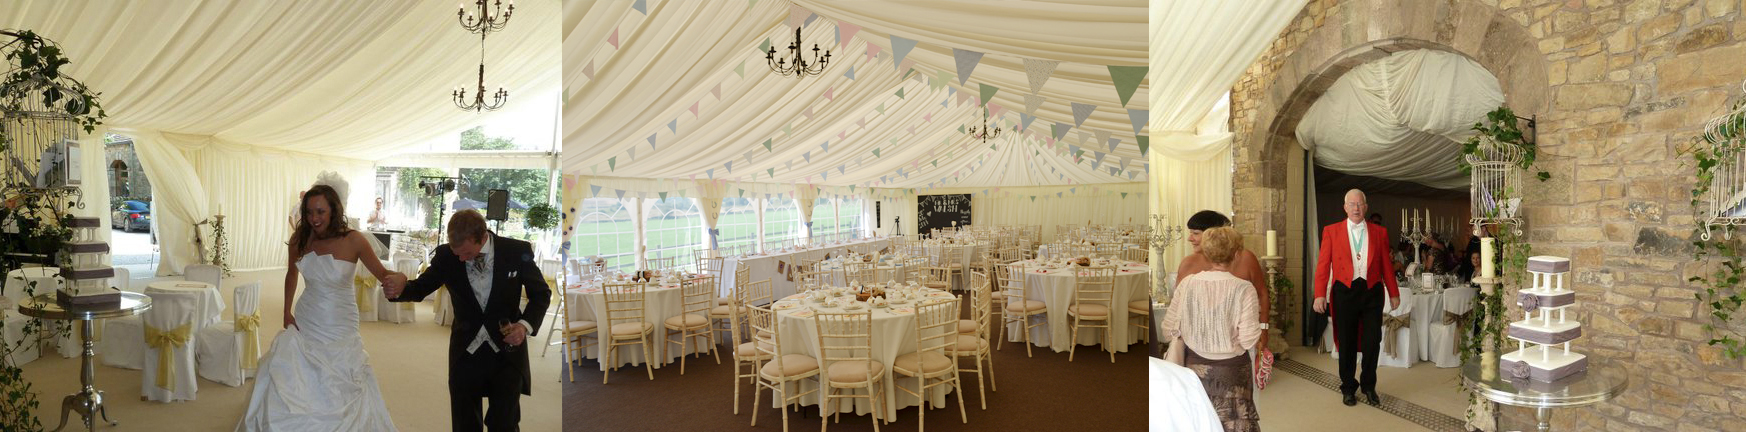 Wedding marquee hire nationwide marquee hire for Indoor marquee decoration